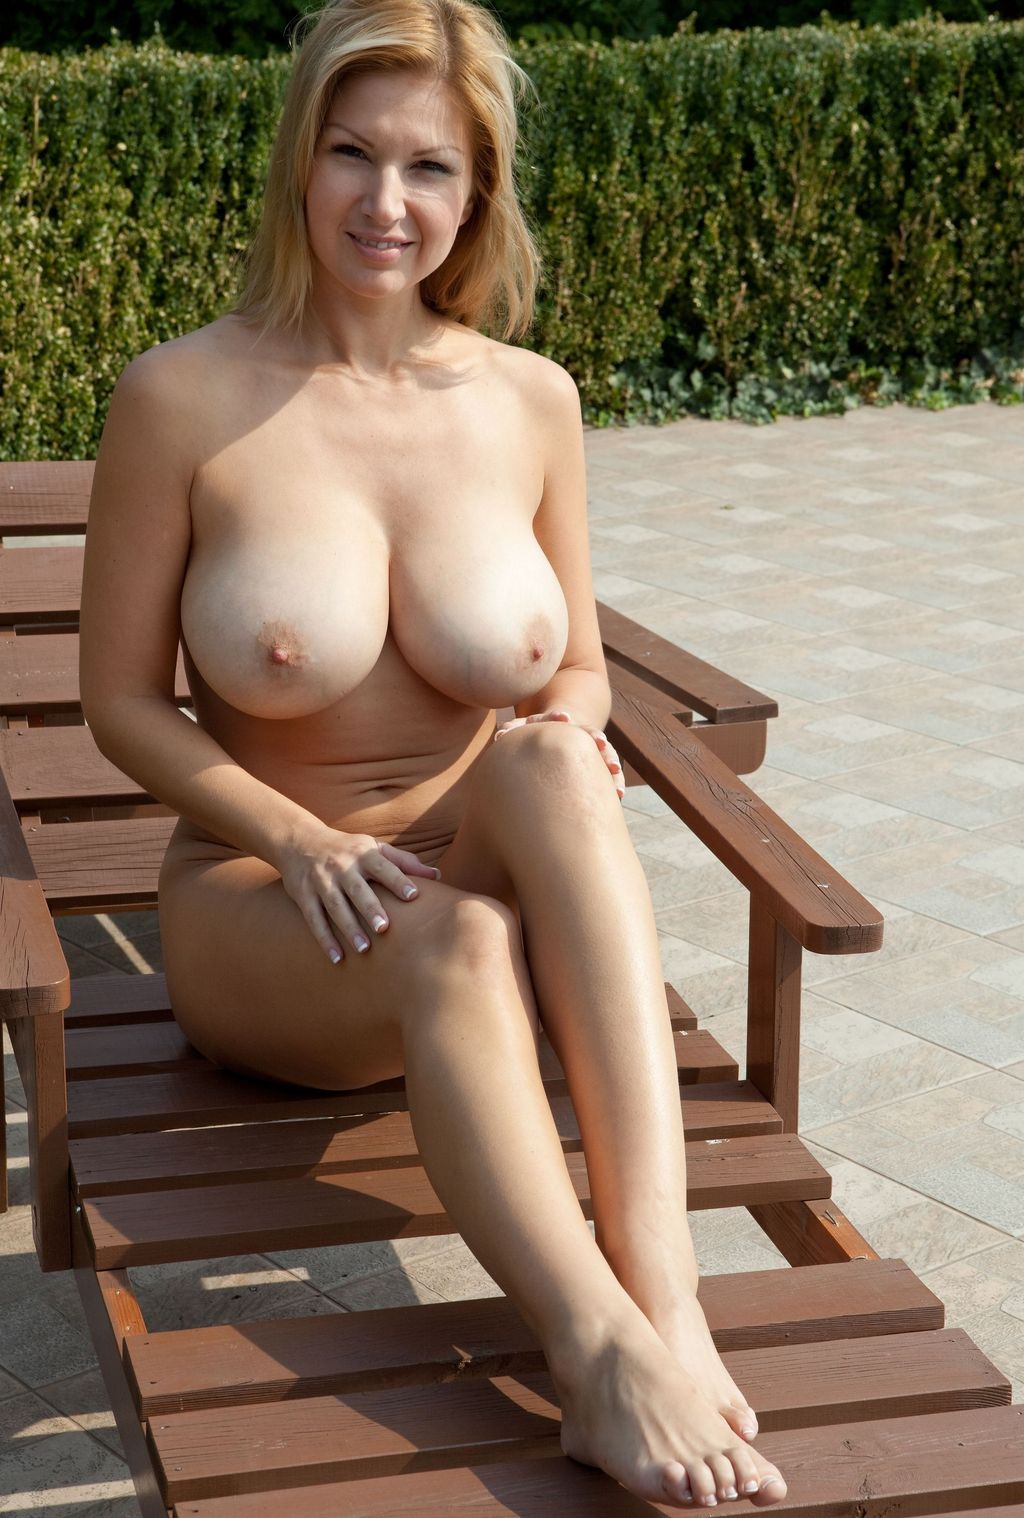 Voissa chat with live nude girls